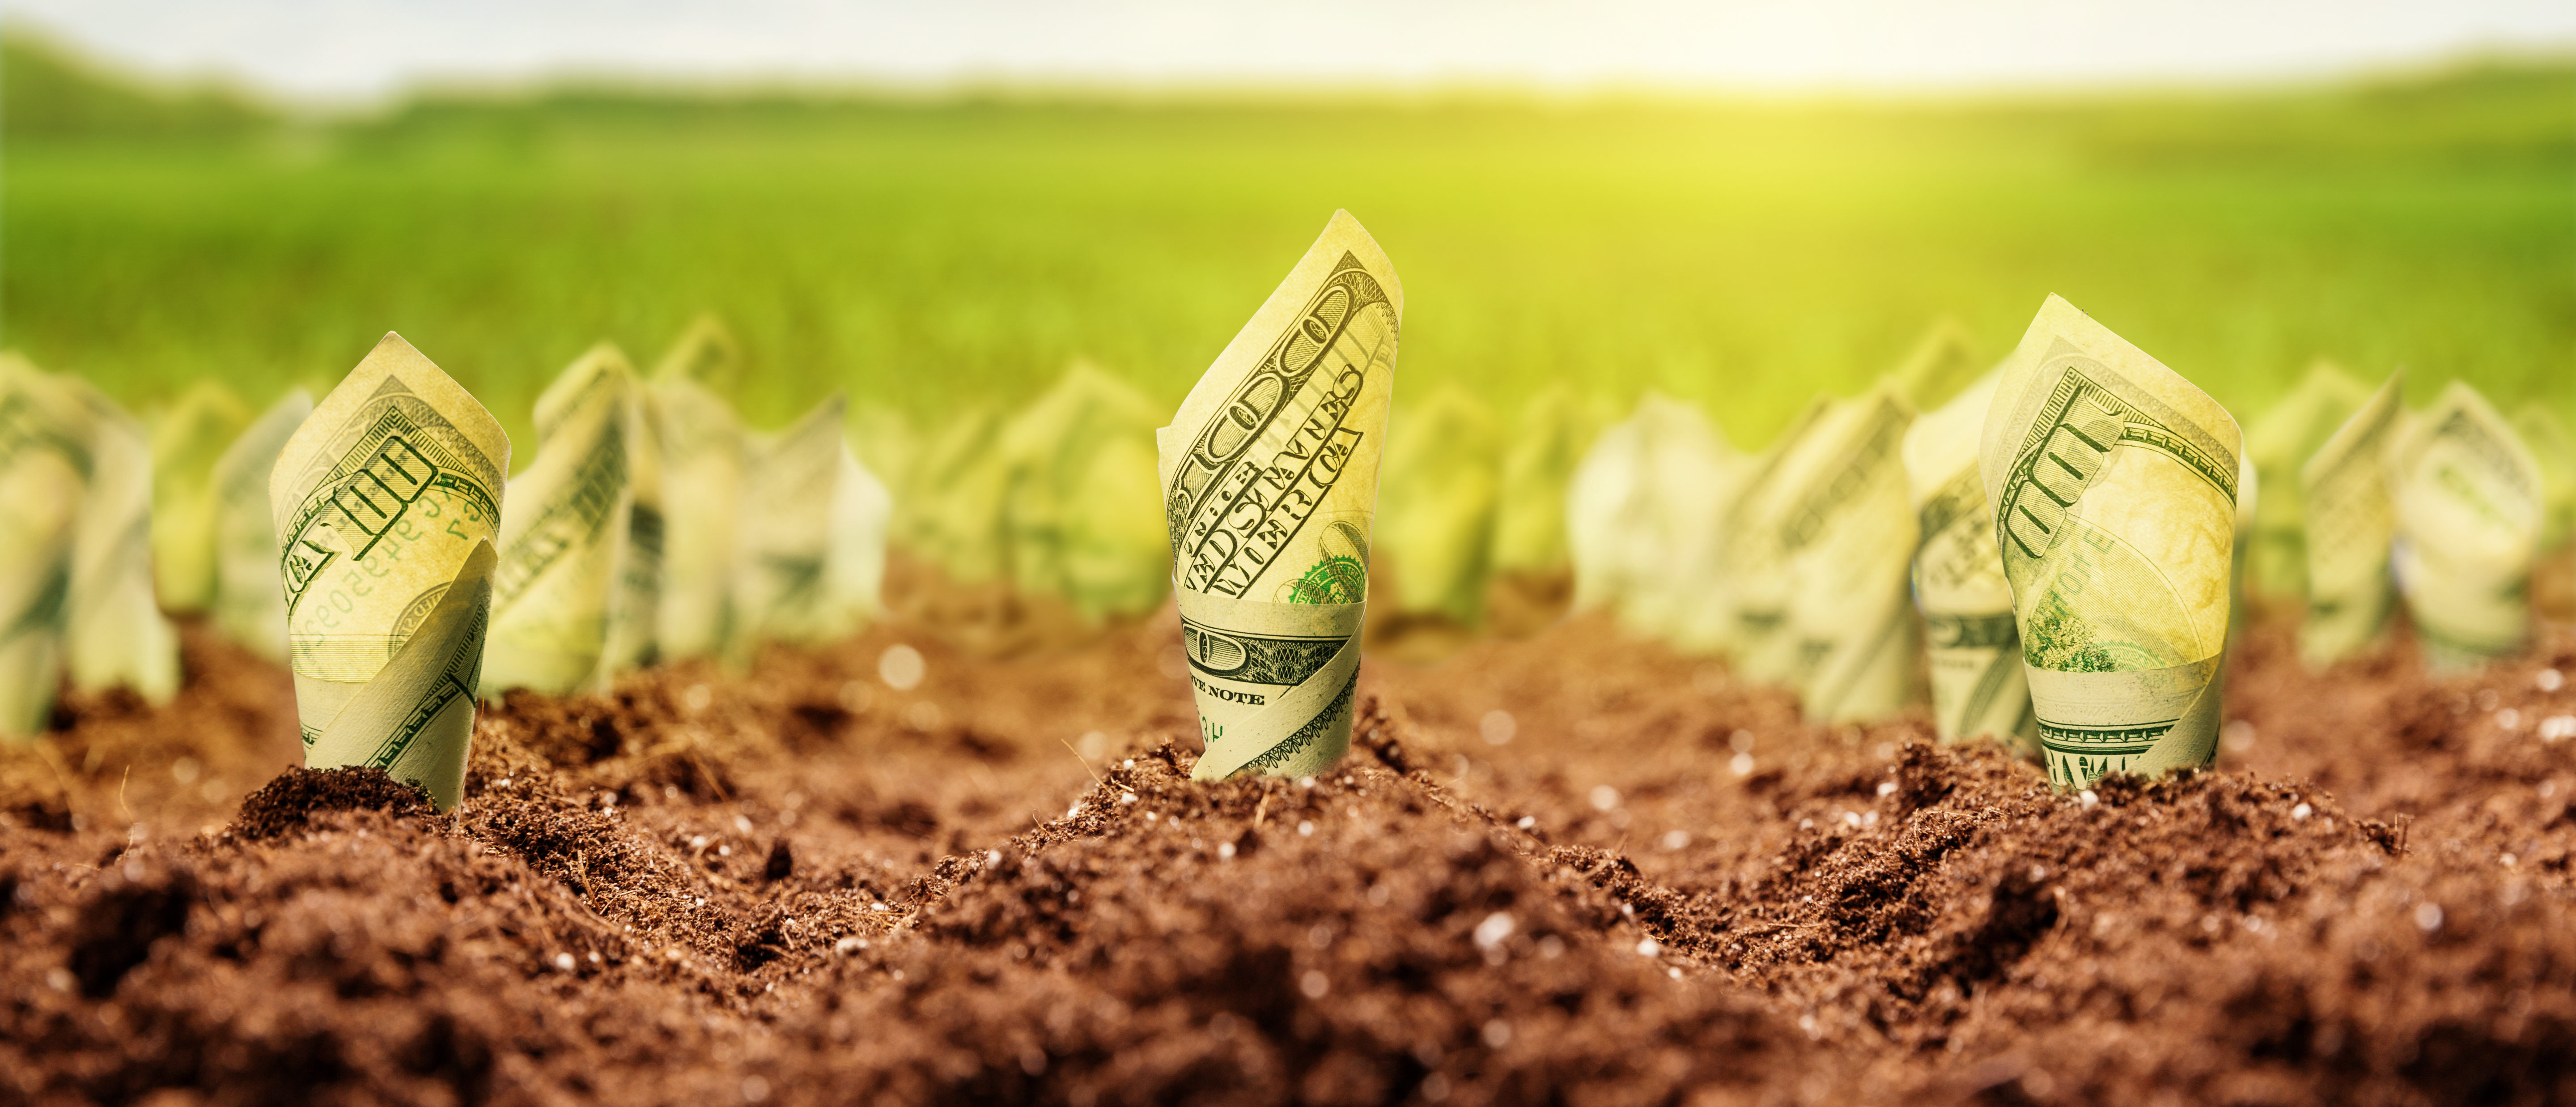 Money grows out of ground Shutterstock